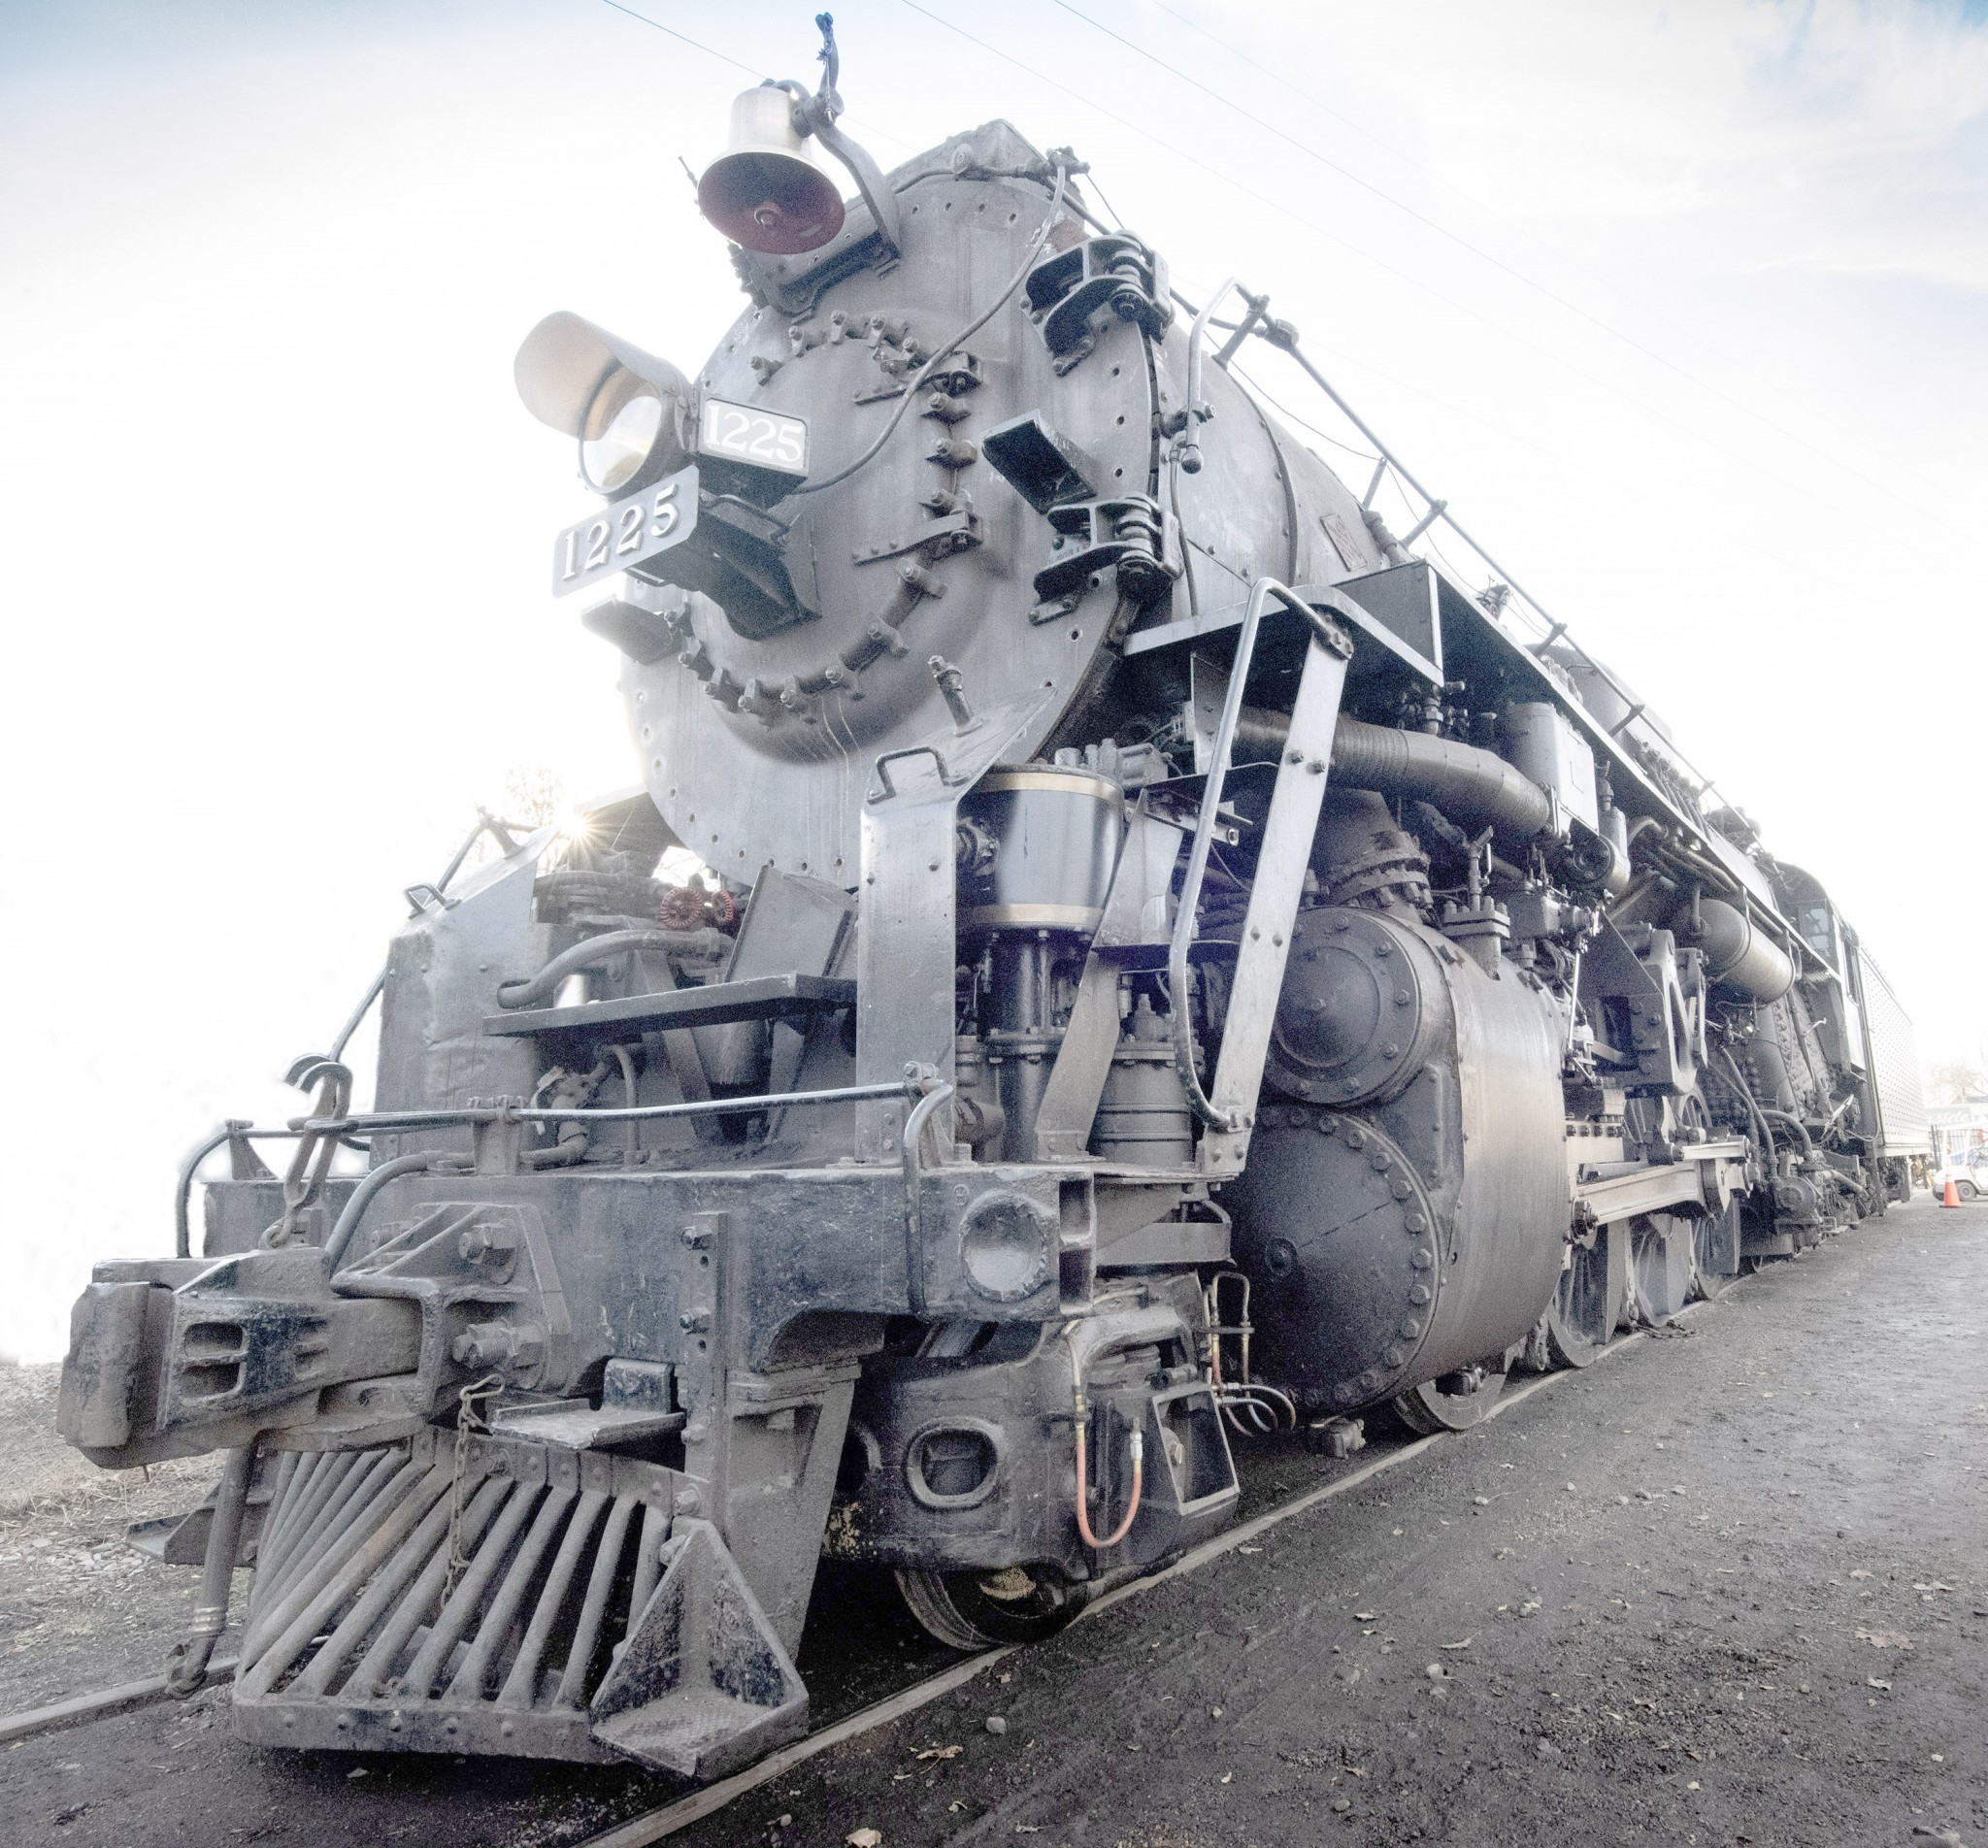 The 440-ton Pere Marquette 1225 steam locomotive is the real power behind the Polar Express, pulling a 15-car train every holiday season at the Steam Railroading Institute in Owosso, Michigan.